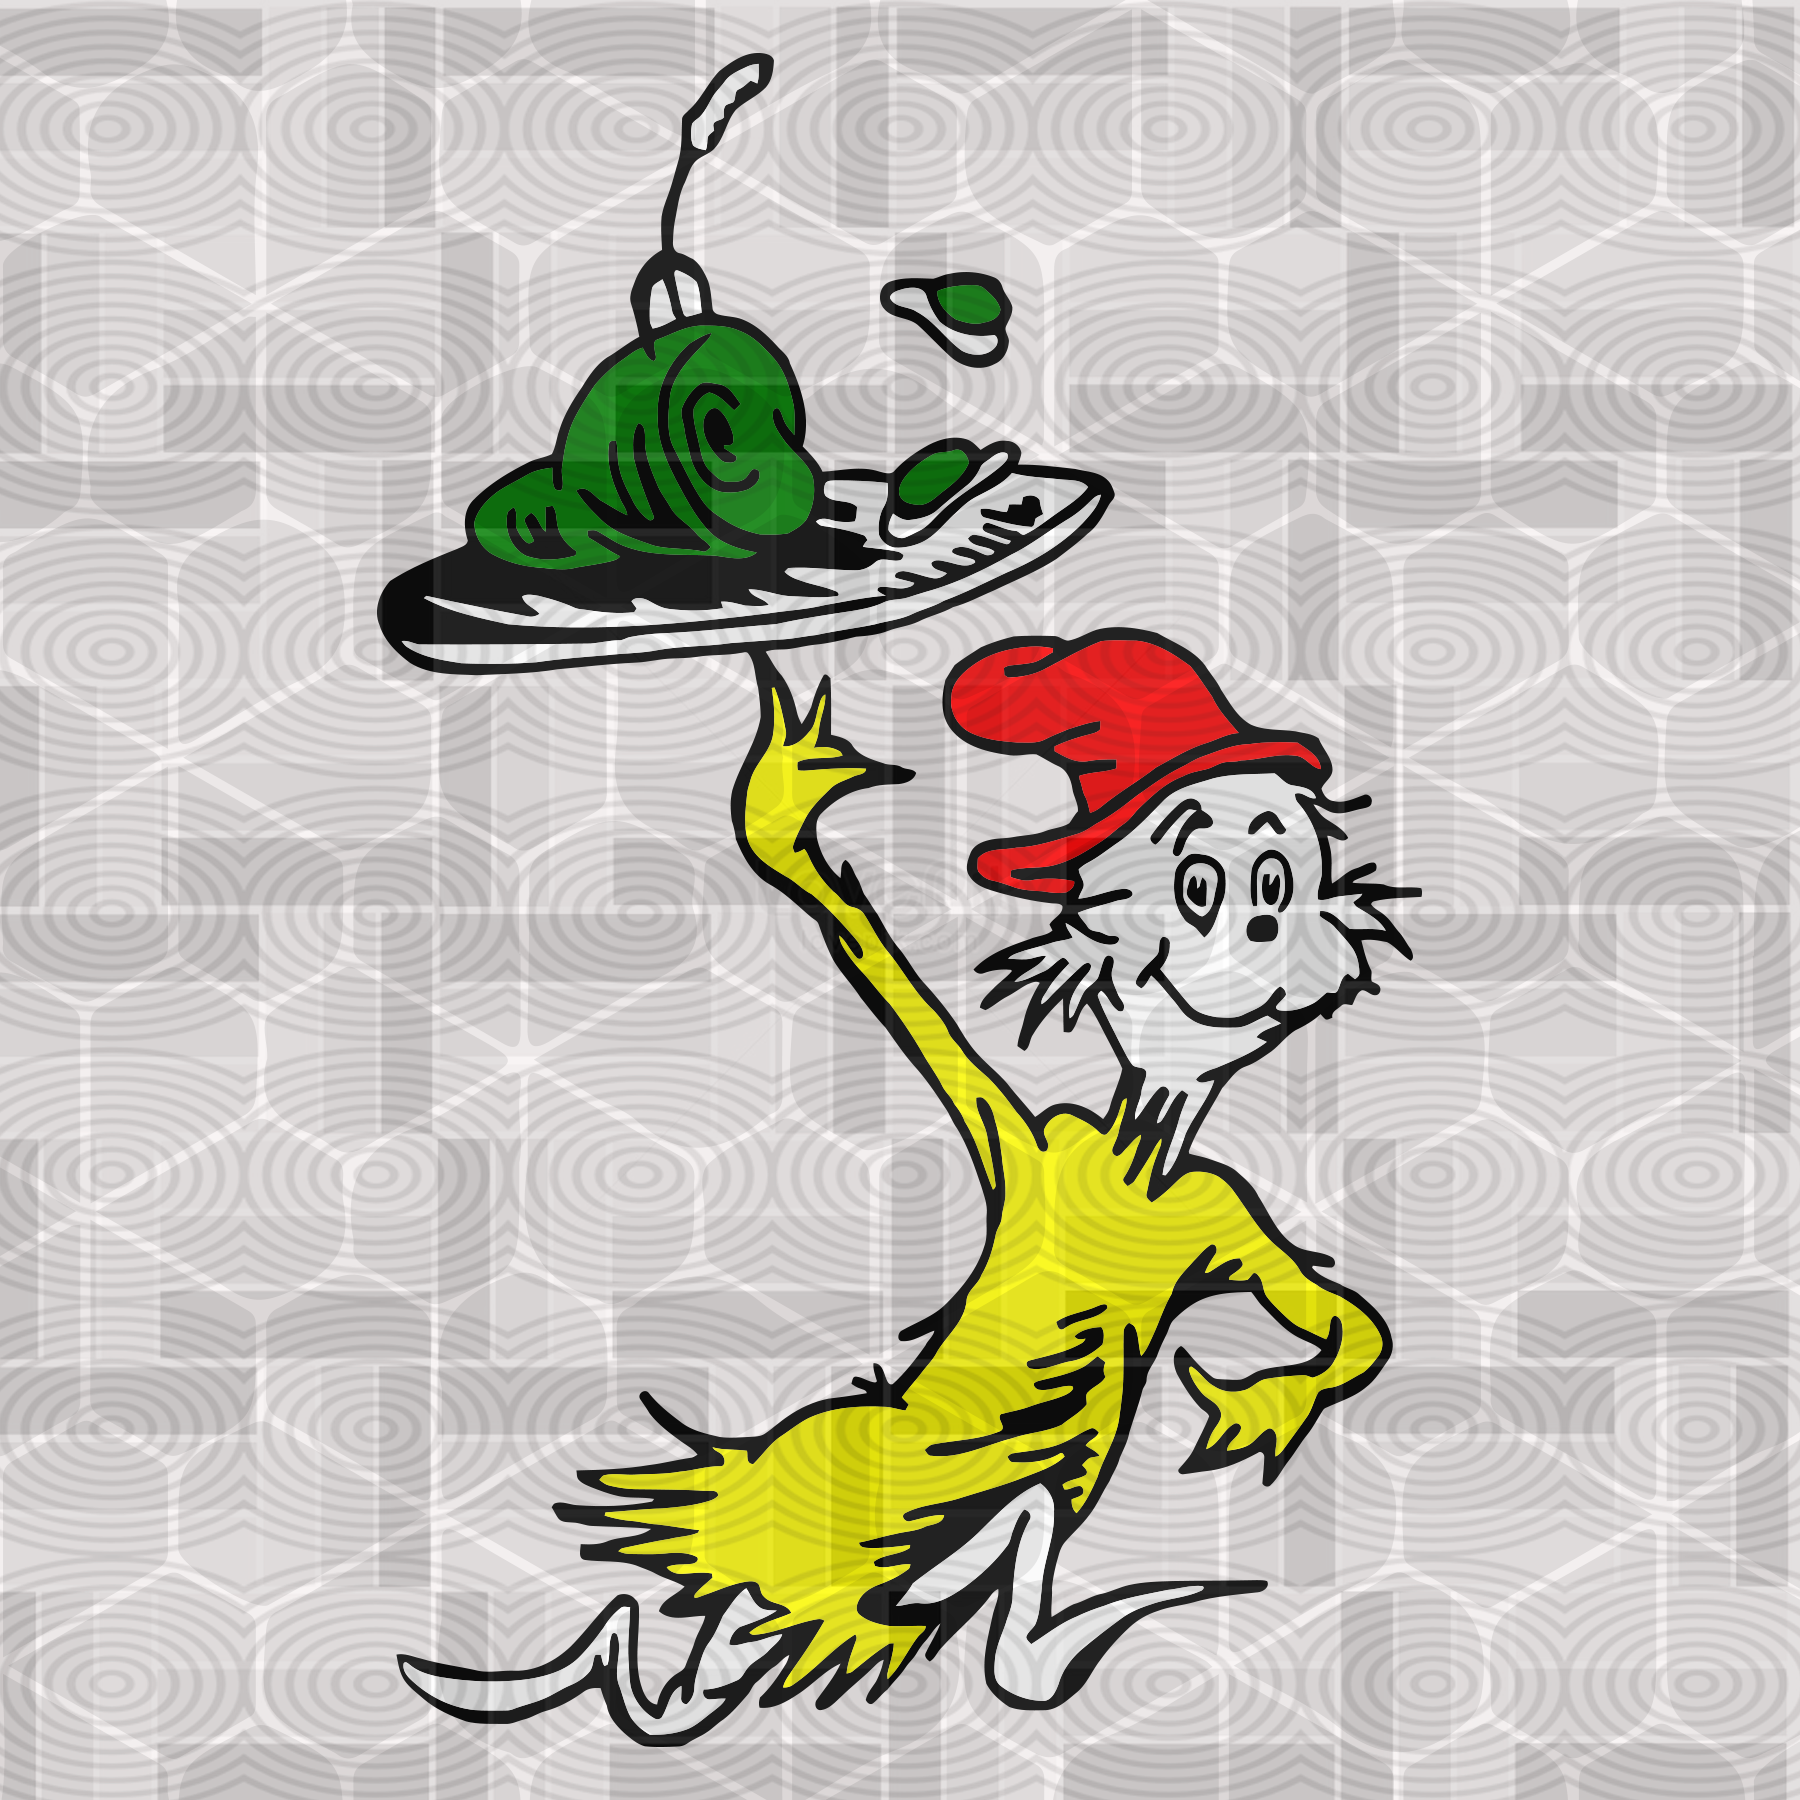 Green Eggs And Ham By Dr Seuss Green Egg And Ham Green Eggs Svg Cat In The Hat Thing 1 Thing 2 Green Eggs And Ham Dr Seuss Birthday Seuss